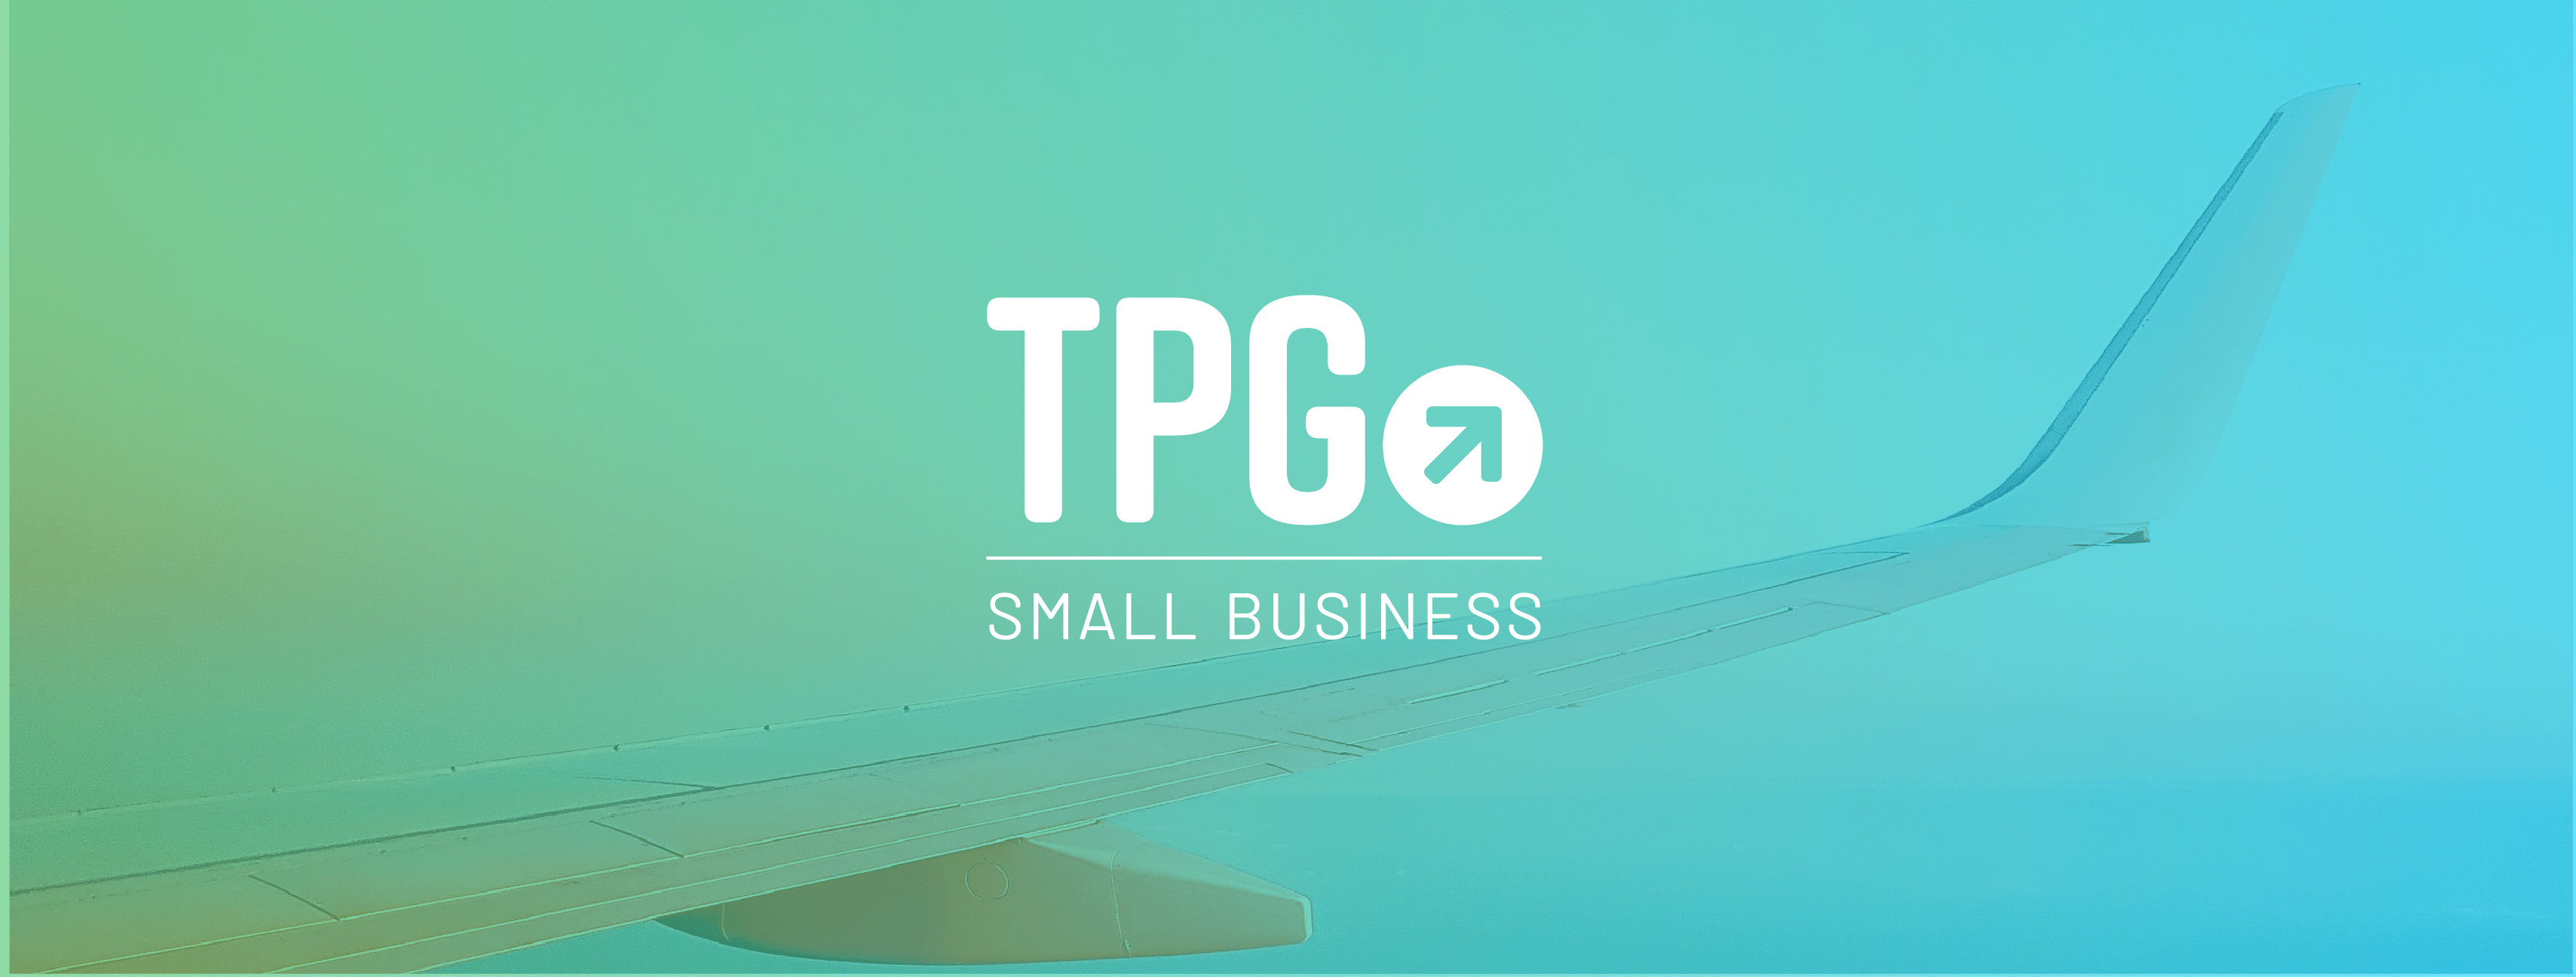 Join TPG's new community for small-business owners and leaders